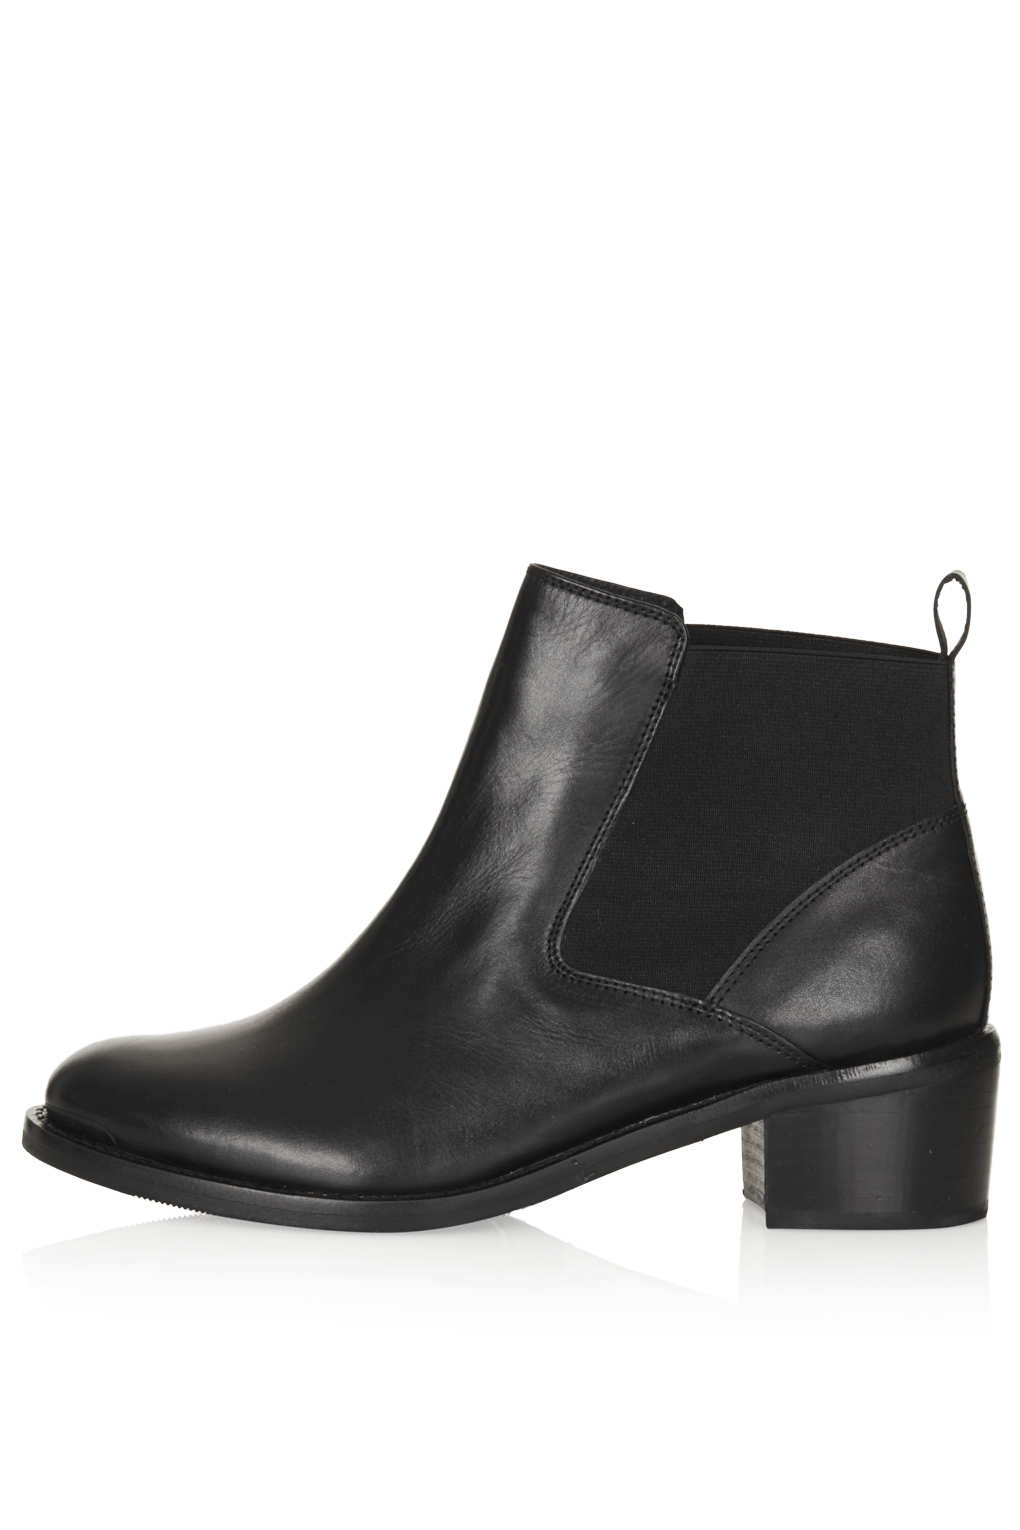 Find a great selection of men's Chelsea boots at nirtsnom.tk Shop for top brands like Timberland, Prada, Ted Baker London & more. Free shipping & returns.